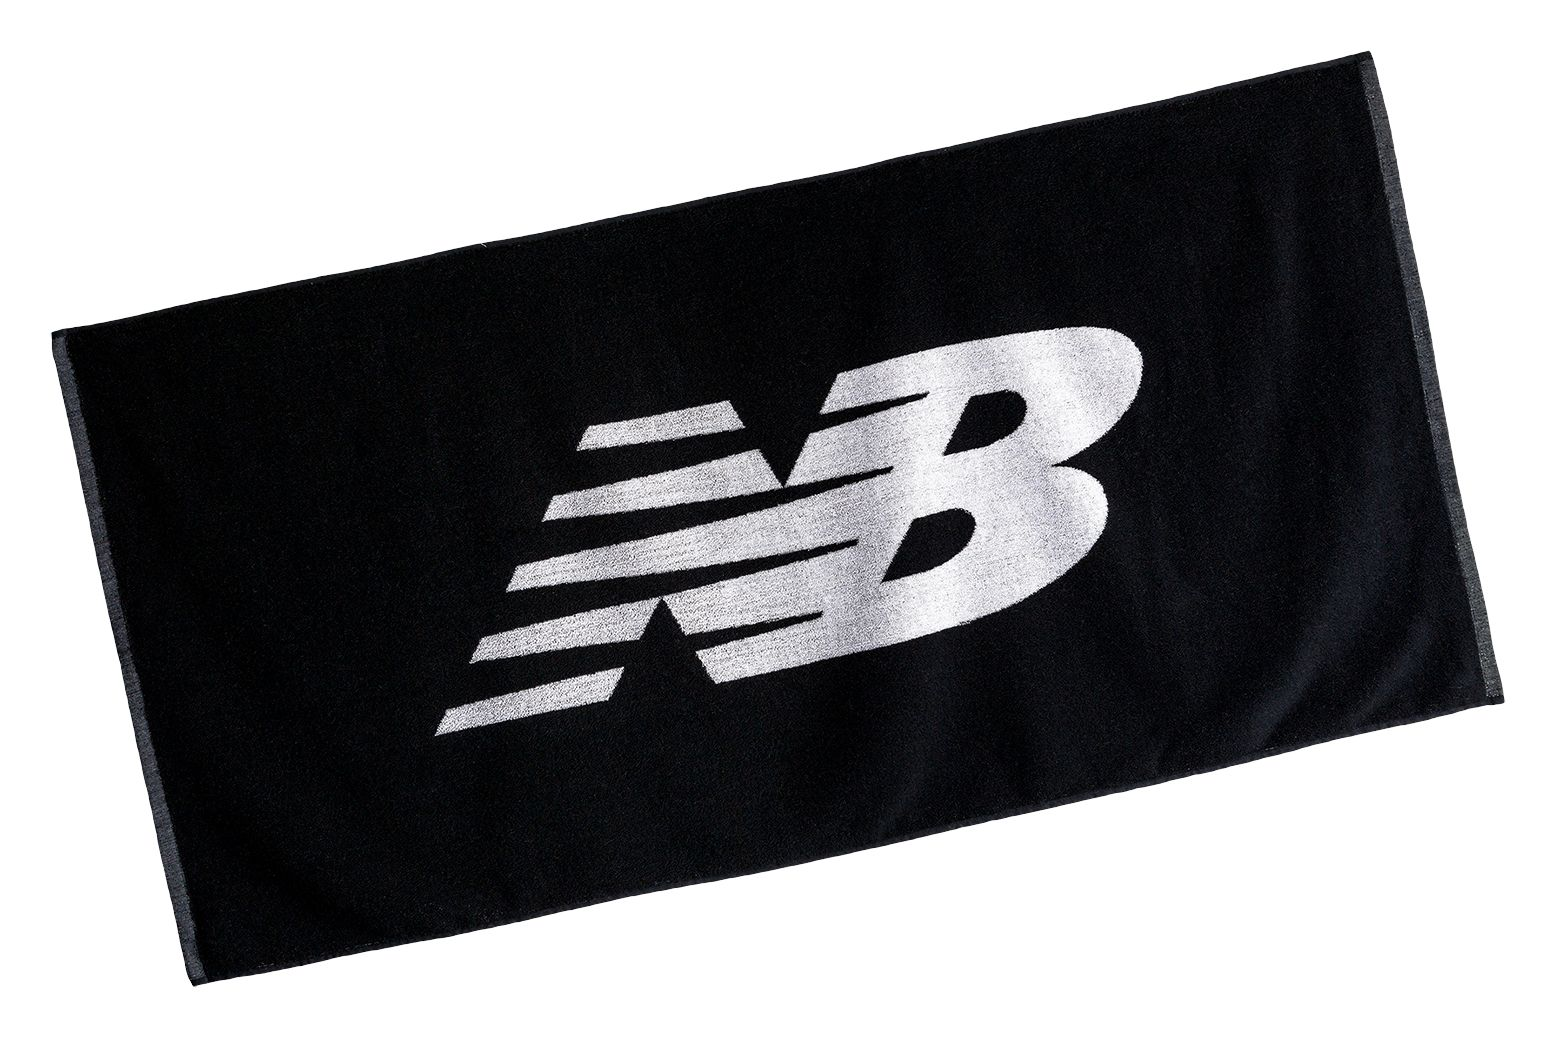 NB Medium NB Towel, Black with White